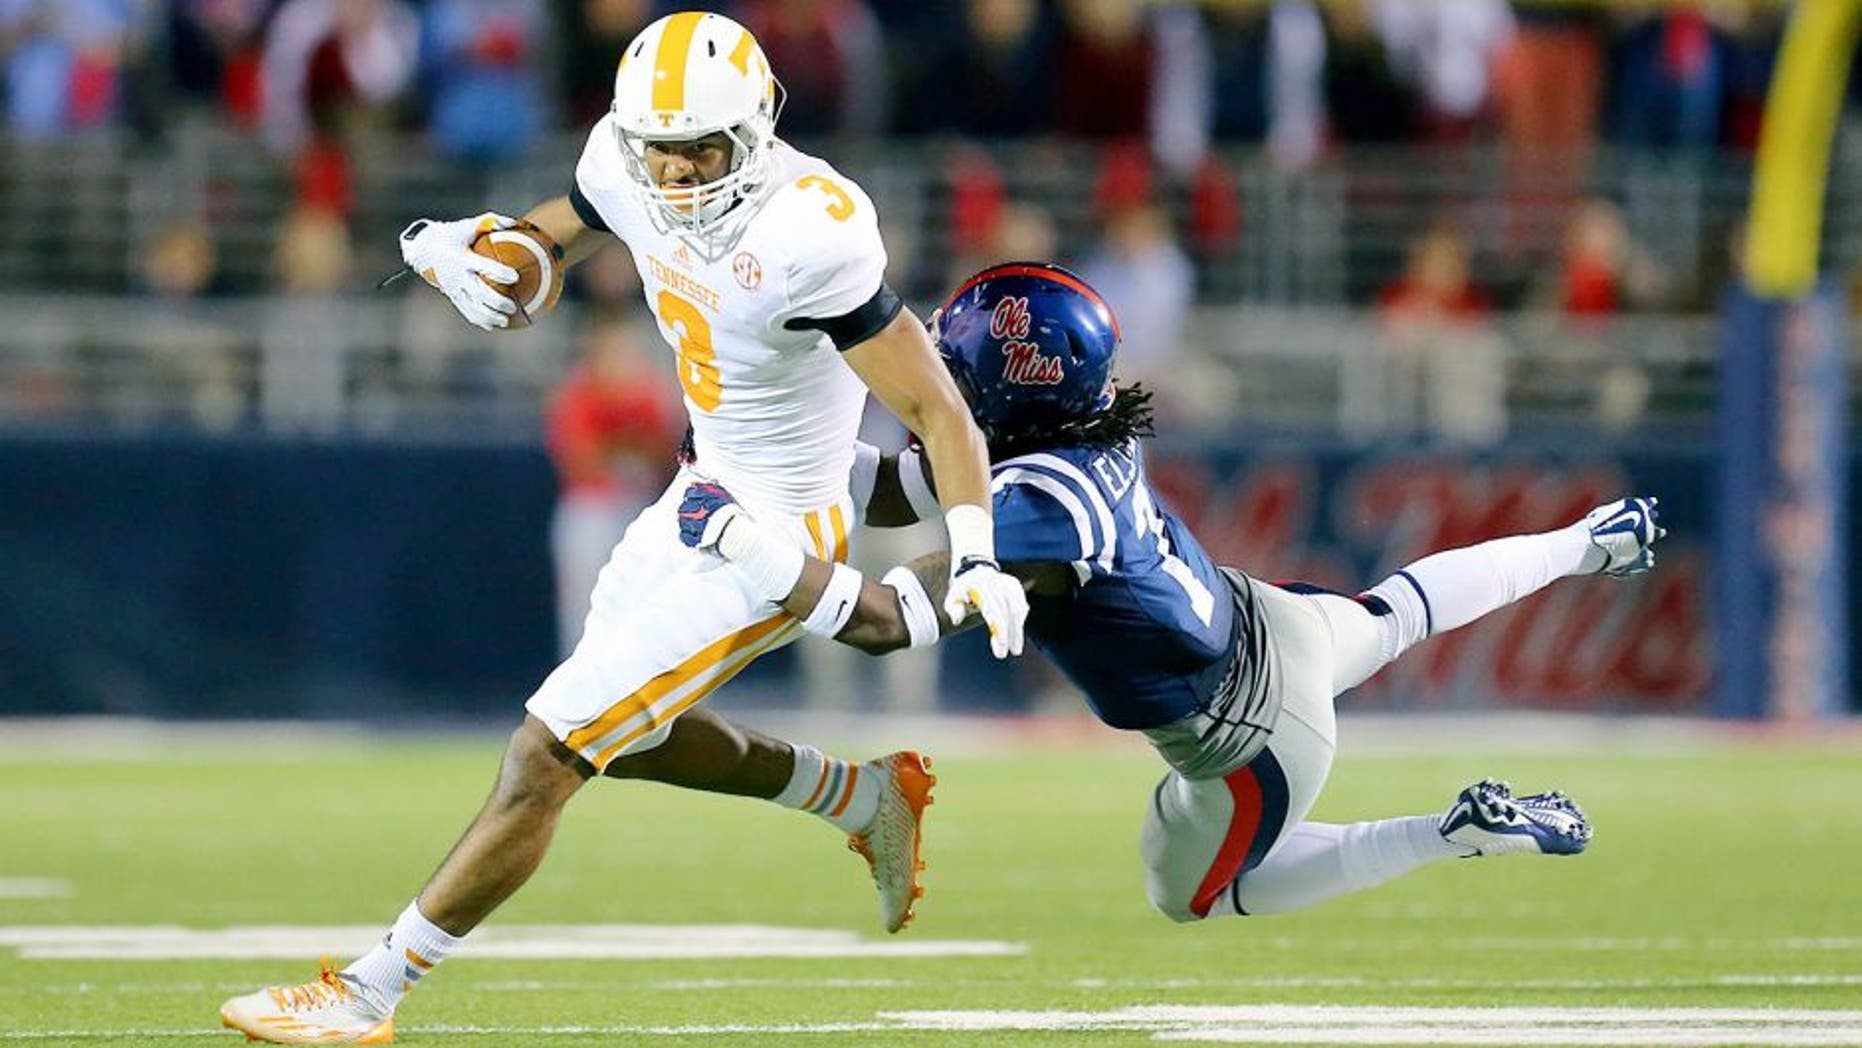 Oct 18, 2014; Oxford, MS, USA; Tennessee Volunteers wide receiver Josh Malone (3) is tackled by Mississippi Rebels defensive back Trae Elston (7) during the game at Vaught-Hemingway Stadium. The Mississippi Rebels defeated the Tennessee Volunteers 34-3. Mandatory Credit: Spruce Derden-USA TODAY Sports